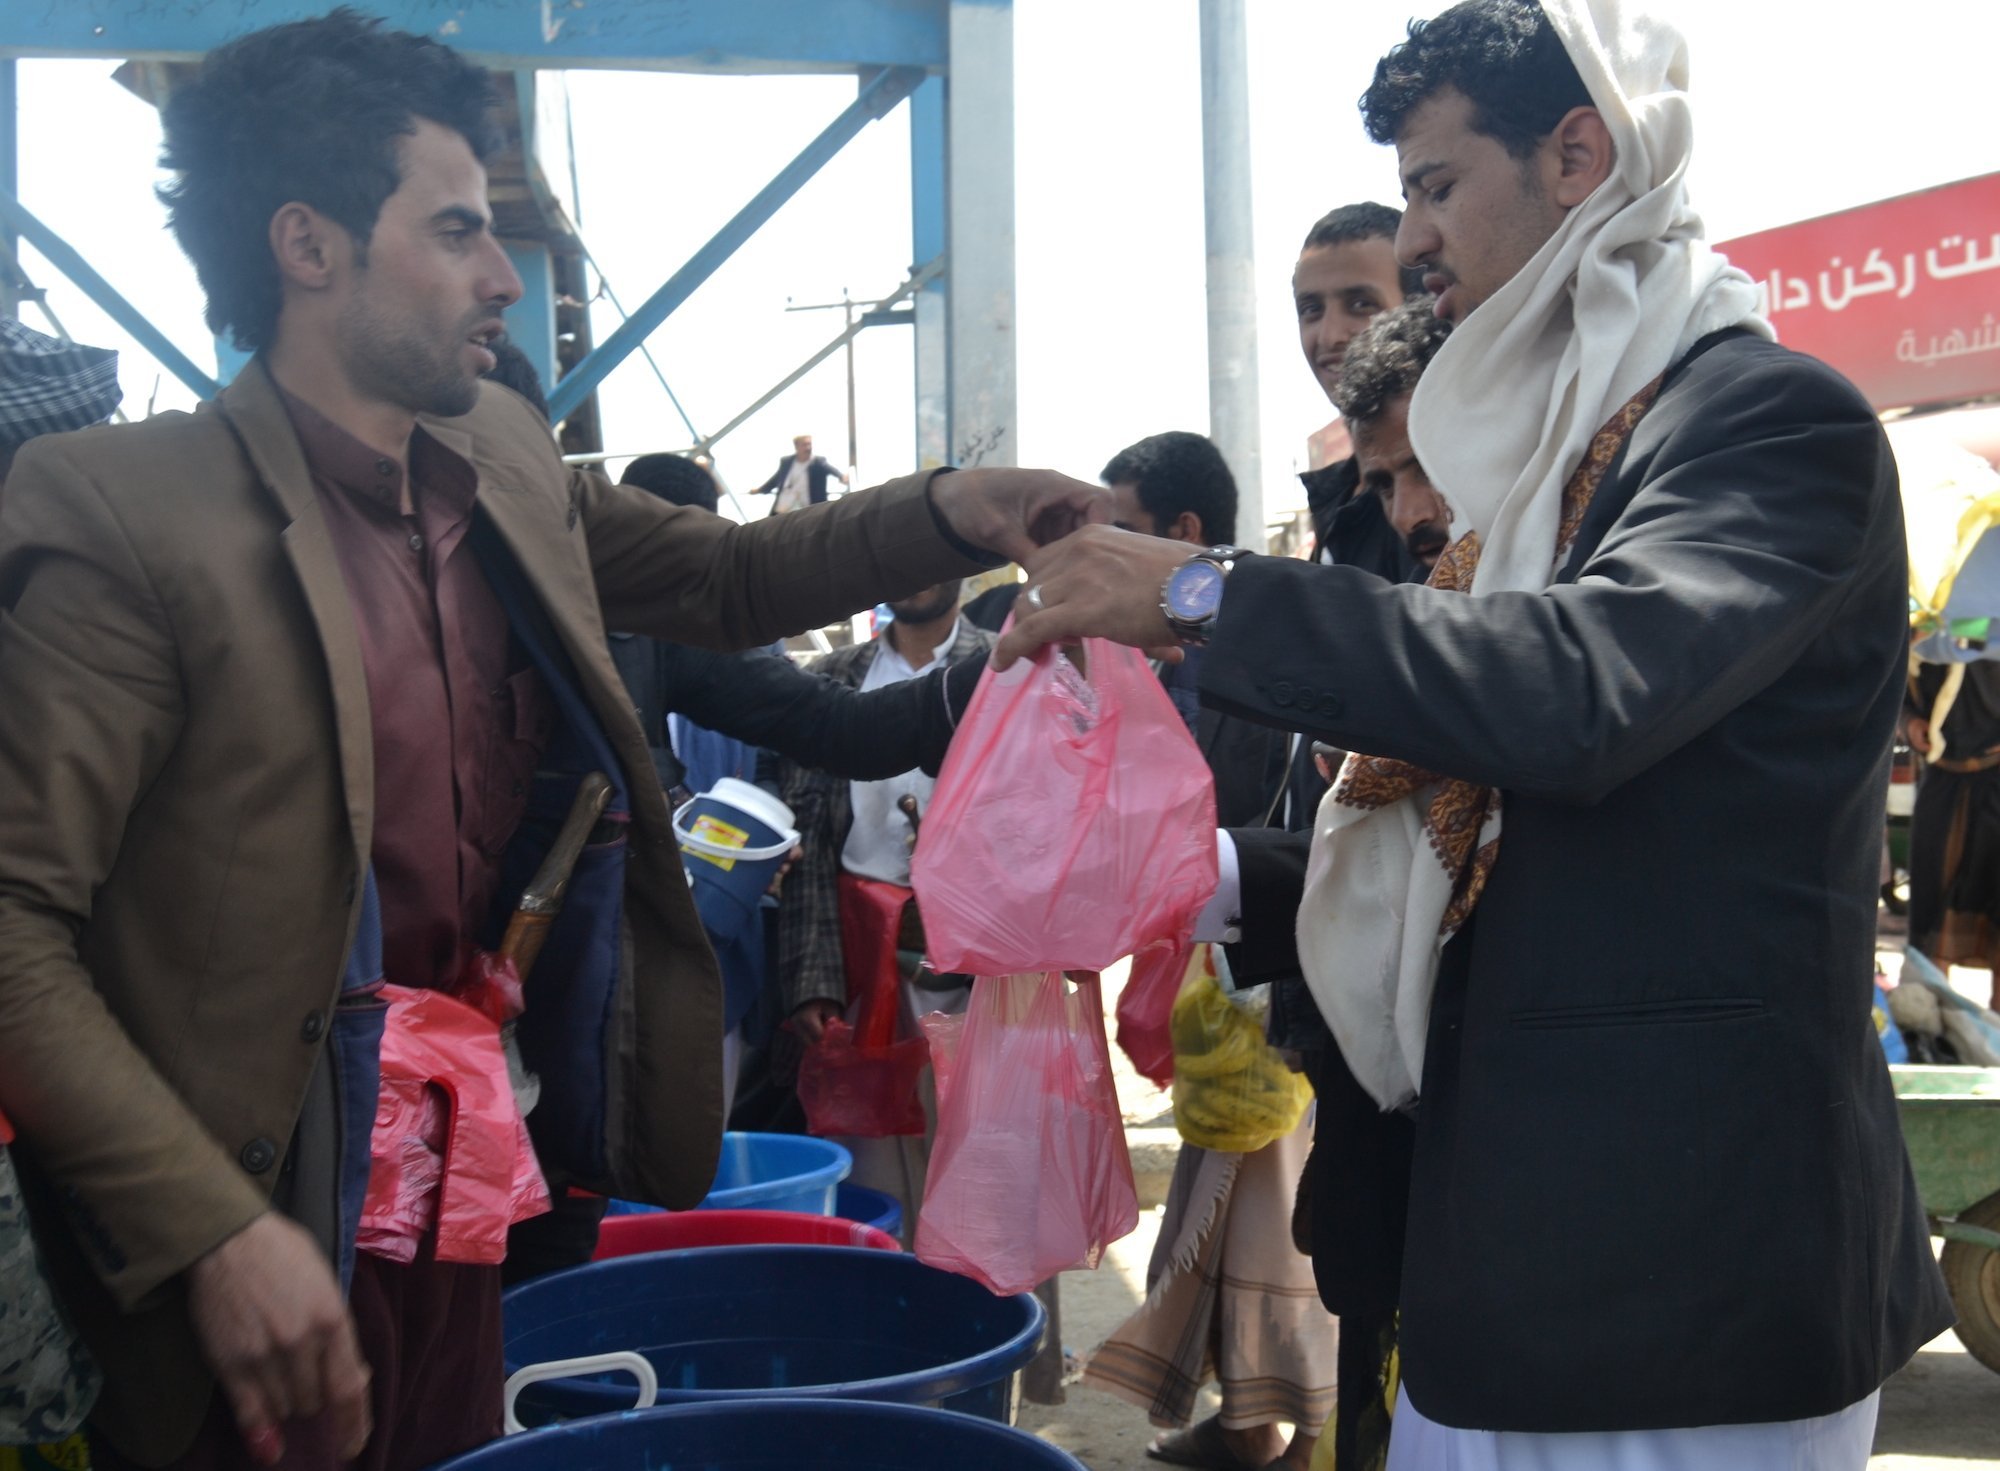 Men buy and sell bags of ice in the Yemeni capital Sana'a during a sustained Saudi Arabian-led bombing campaign